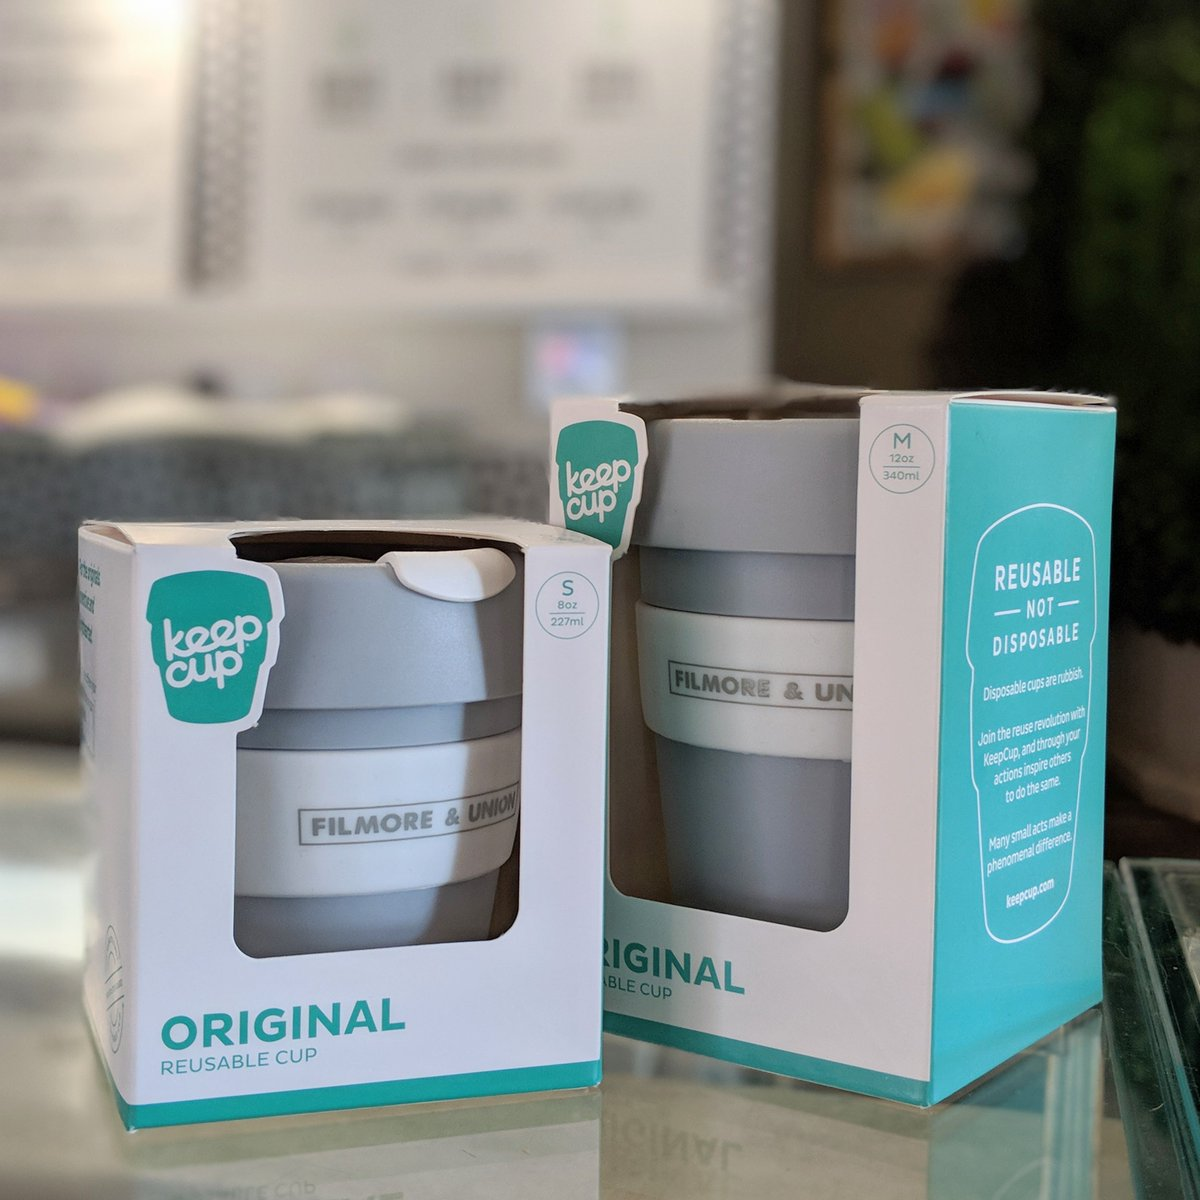 Reuserevolution Hashtag On Twitter Keepcup Brew Milk Medium 340ml 12oz Enjoy 50p Off A Coffee When You Buy Your Keep Cup And Then 30p Each Time Bring Back Salutethereuser Plasticfreejuly